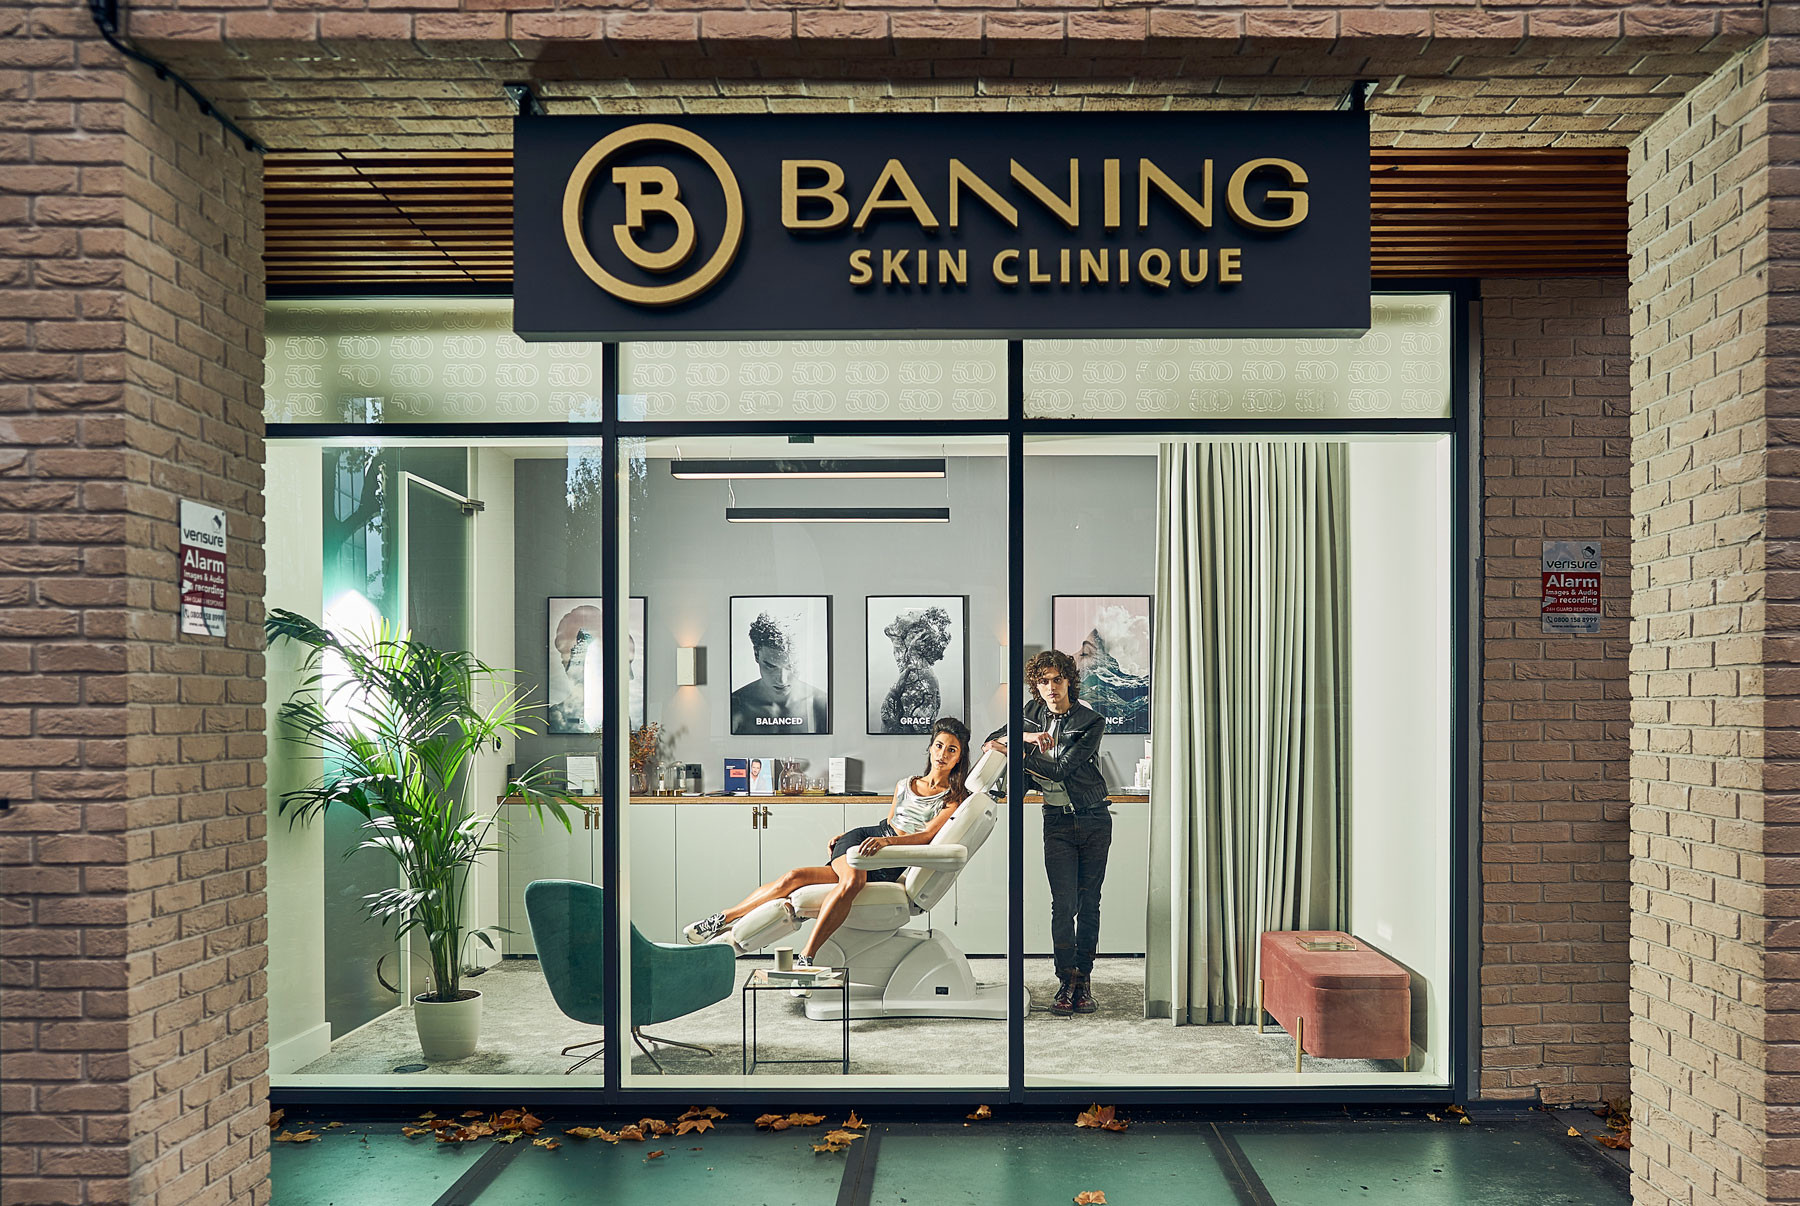 Exterior of the Banning Skincare Clinque taking during the evening with the lights on inside showcasing the design with 2 models one lady laying on the chair and a man standing beside her